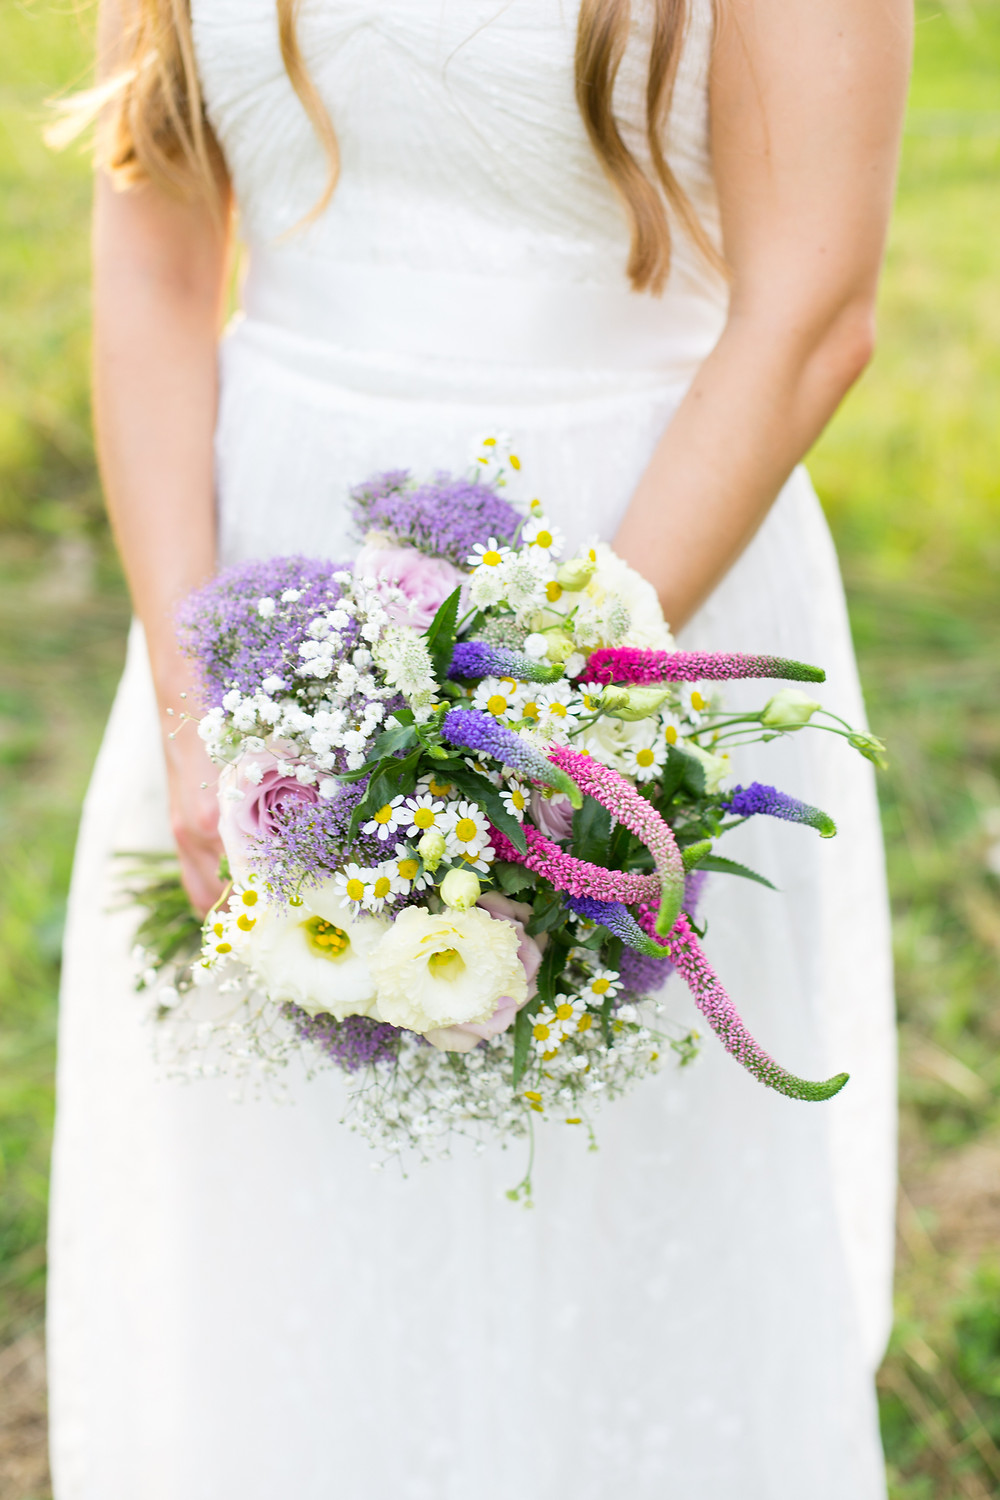 A wedding bouquet for a hampshire wedding by Francesca Sharp Flowers